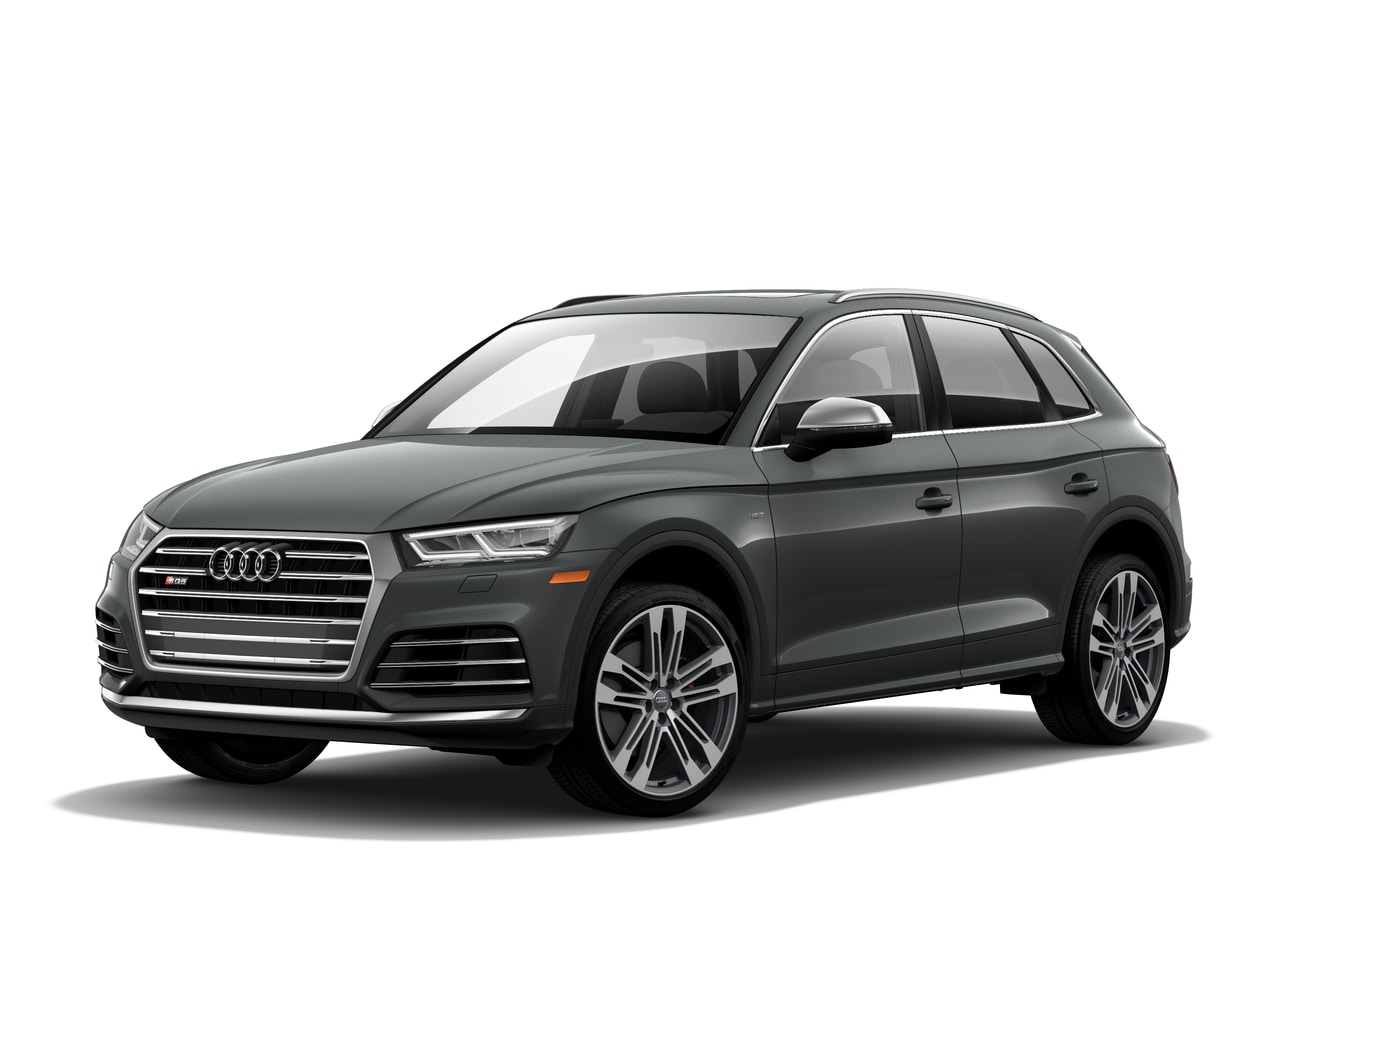 2018 Audi SQ5 Sport Utility Vehicle